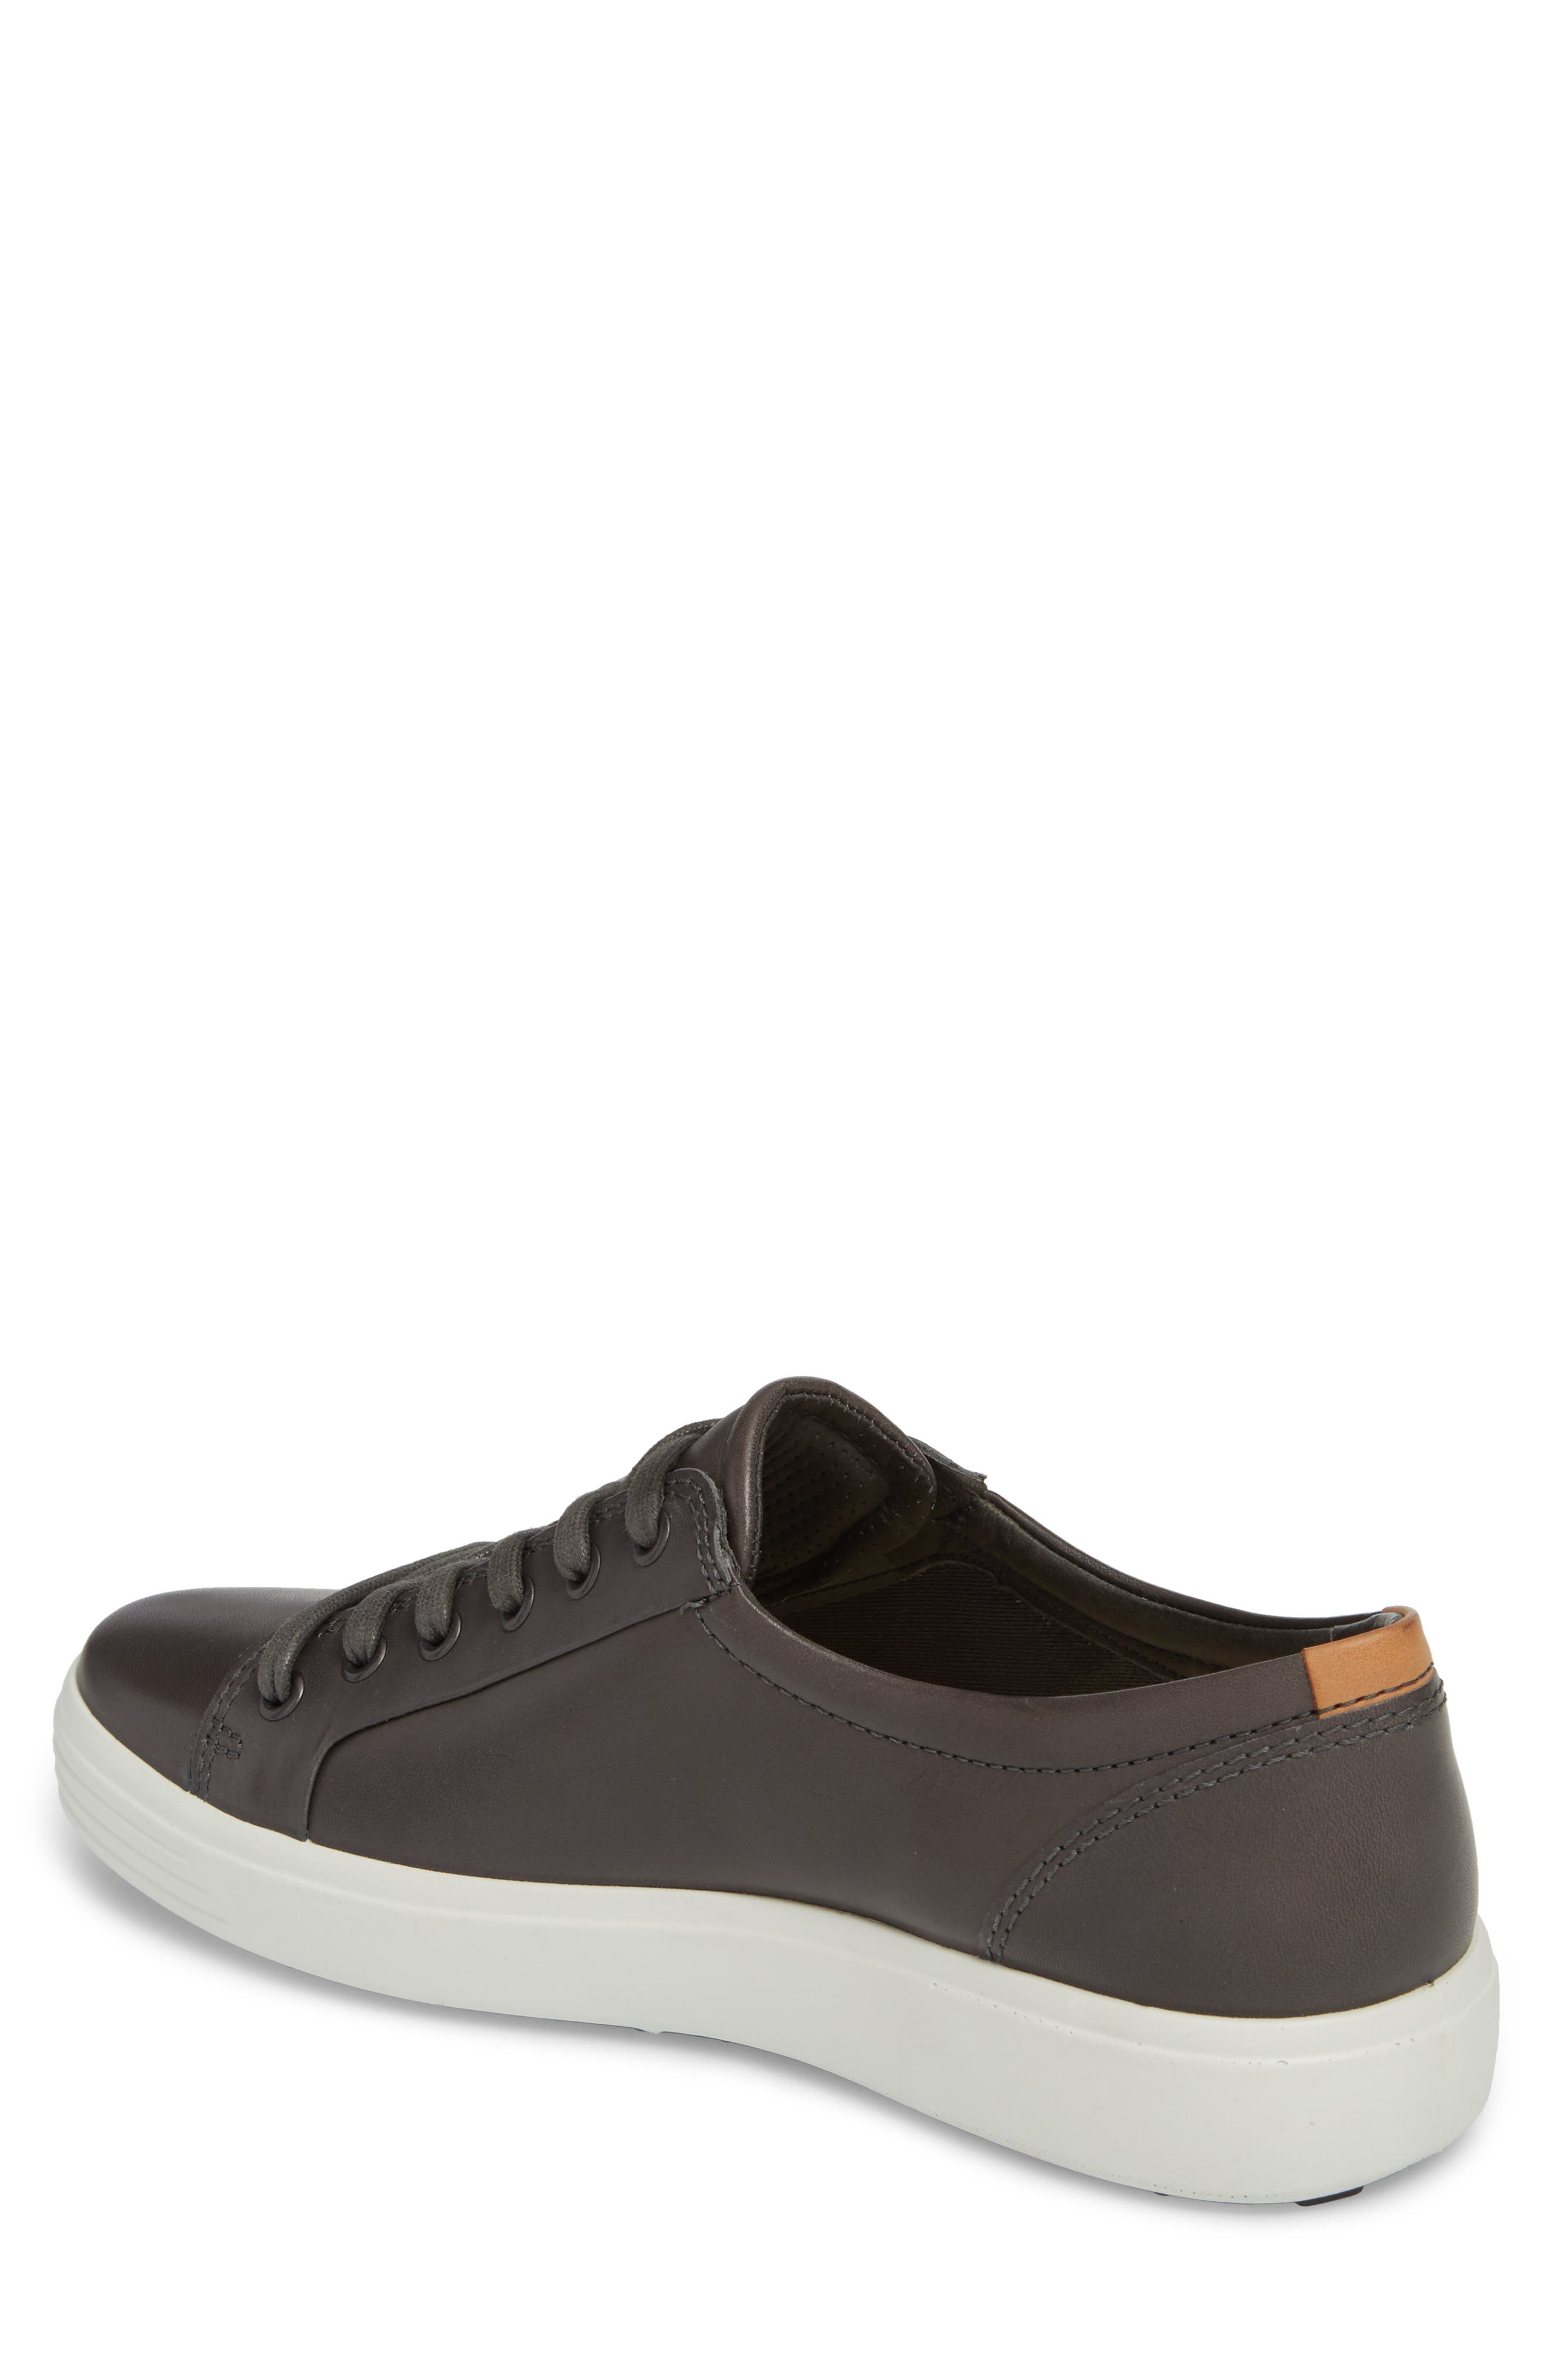 Soft VII Lace-Up Sneaker,                             Alternate thumbnail 22, color,